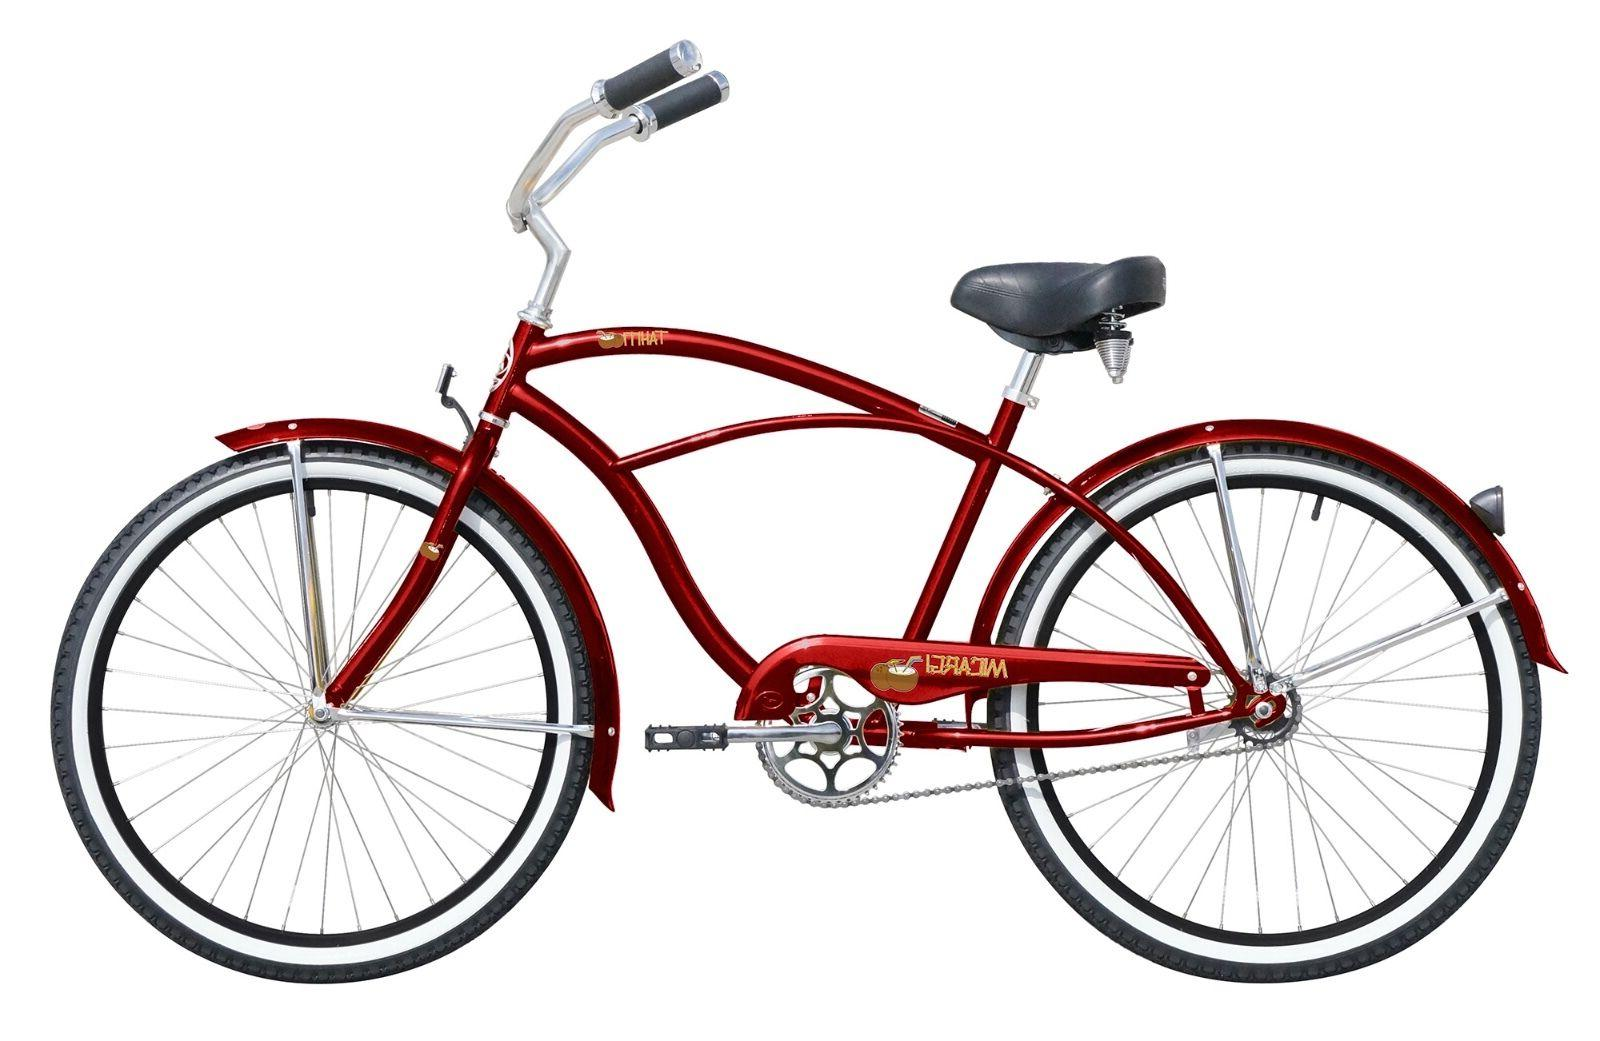 NEW Beach Cruiser Micargi Tahitti One Speed Bike Bicycle 26""